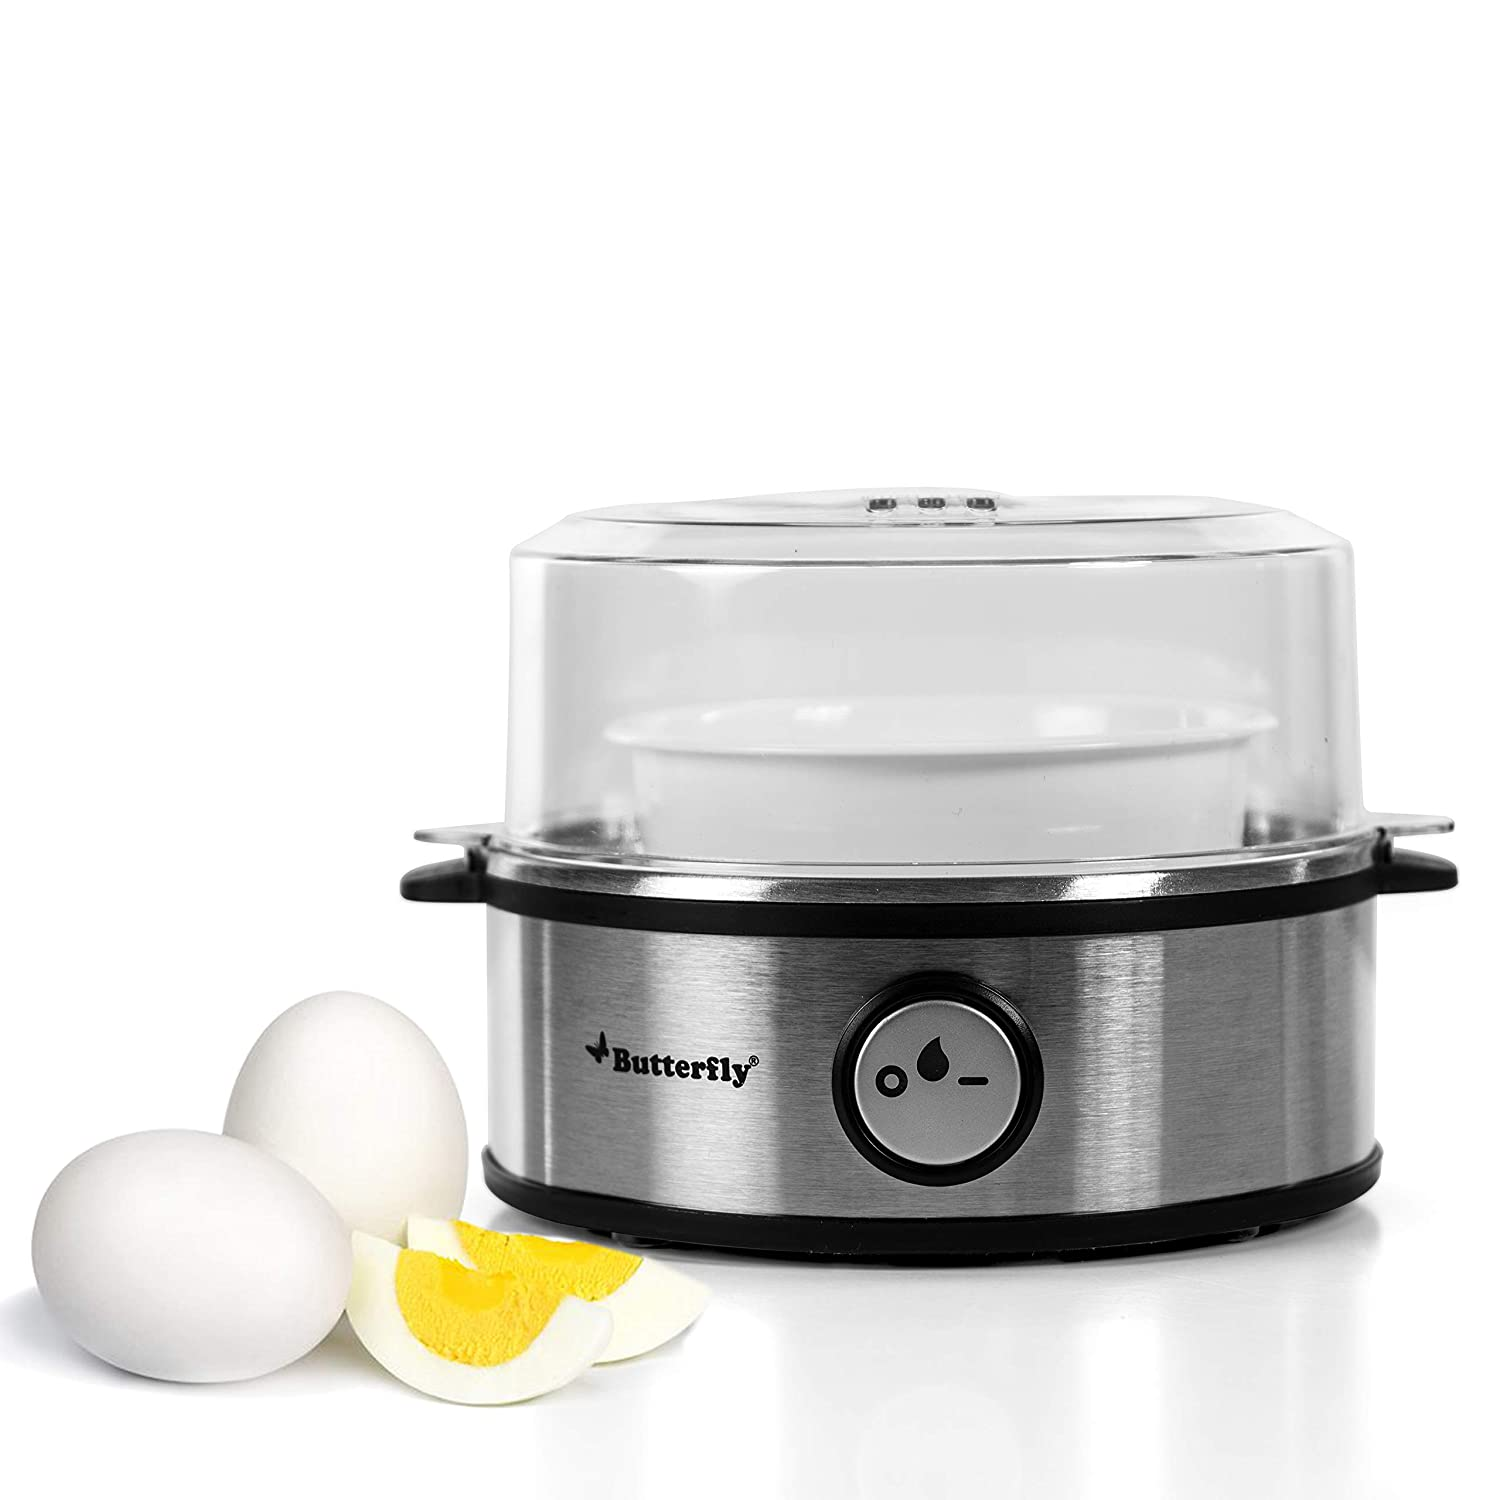 Butterfly Electric Egg Boiler